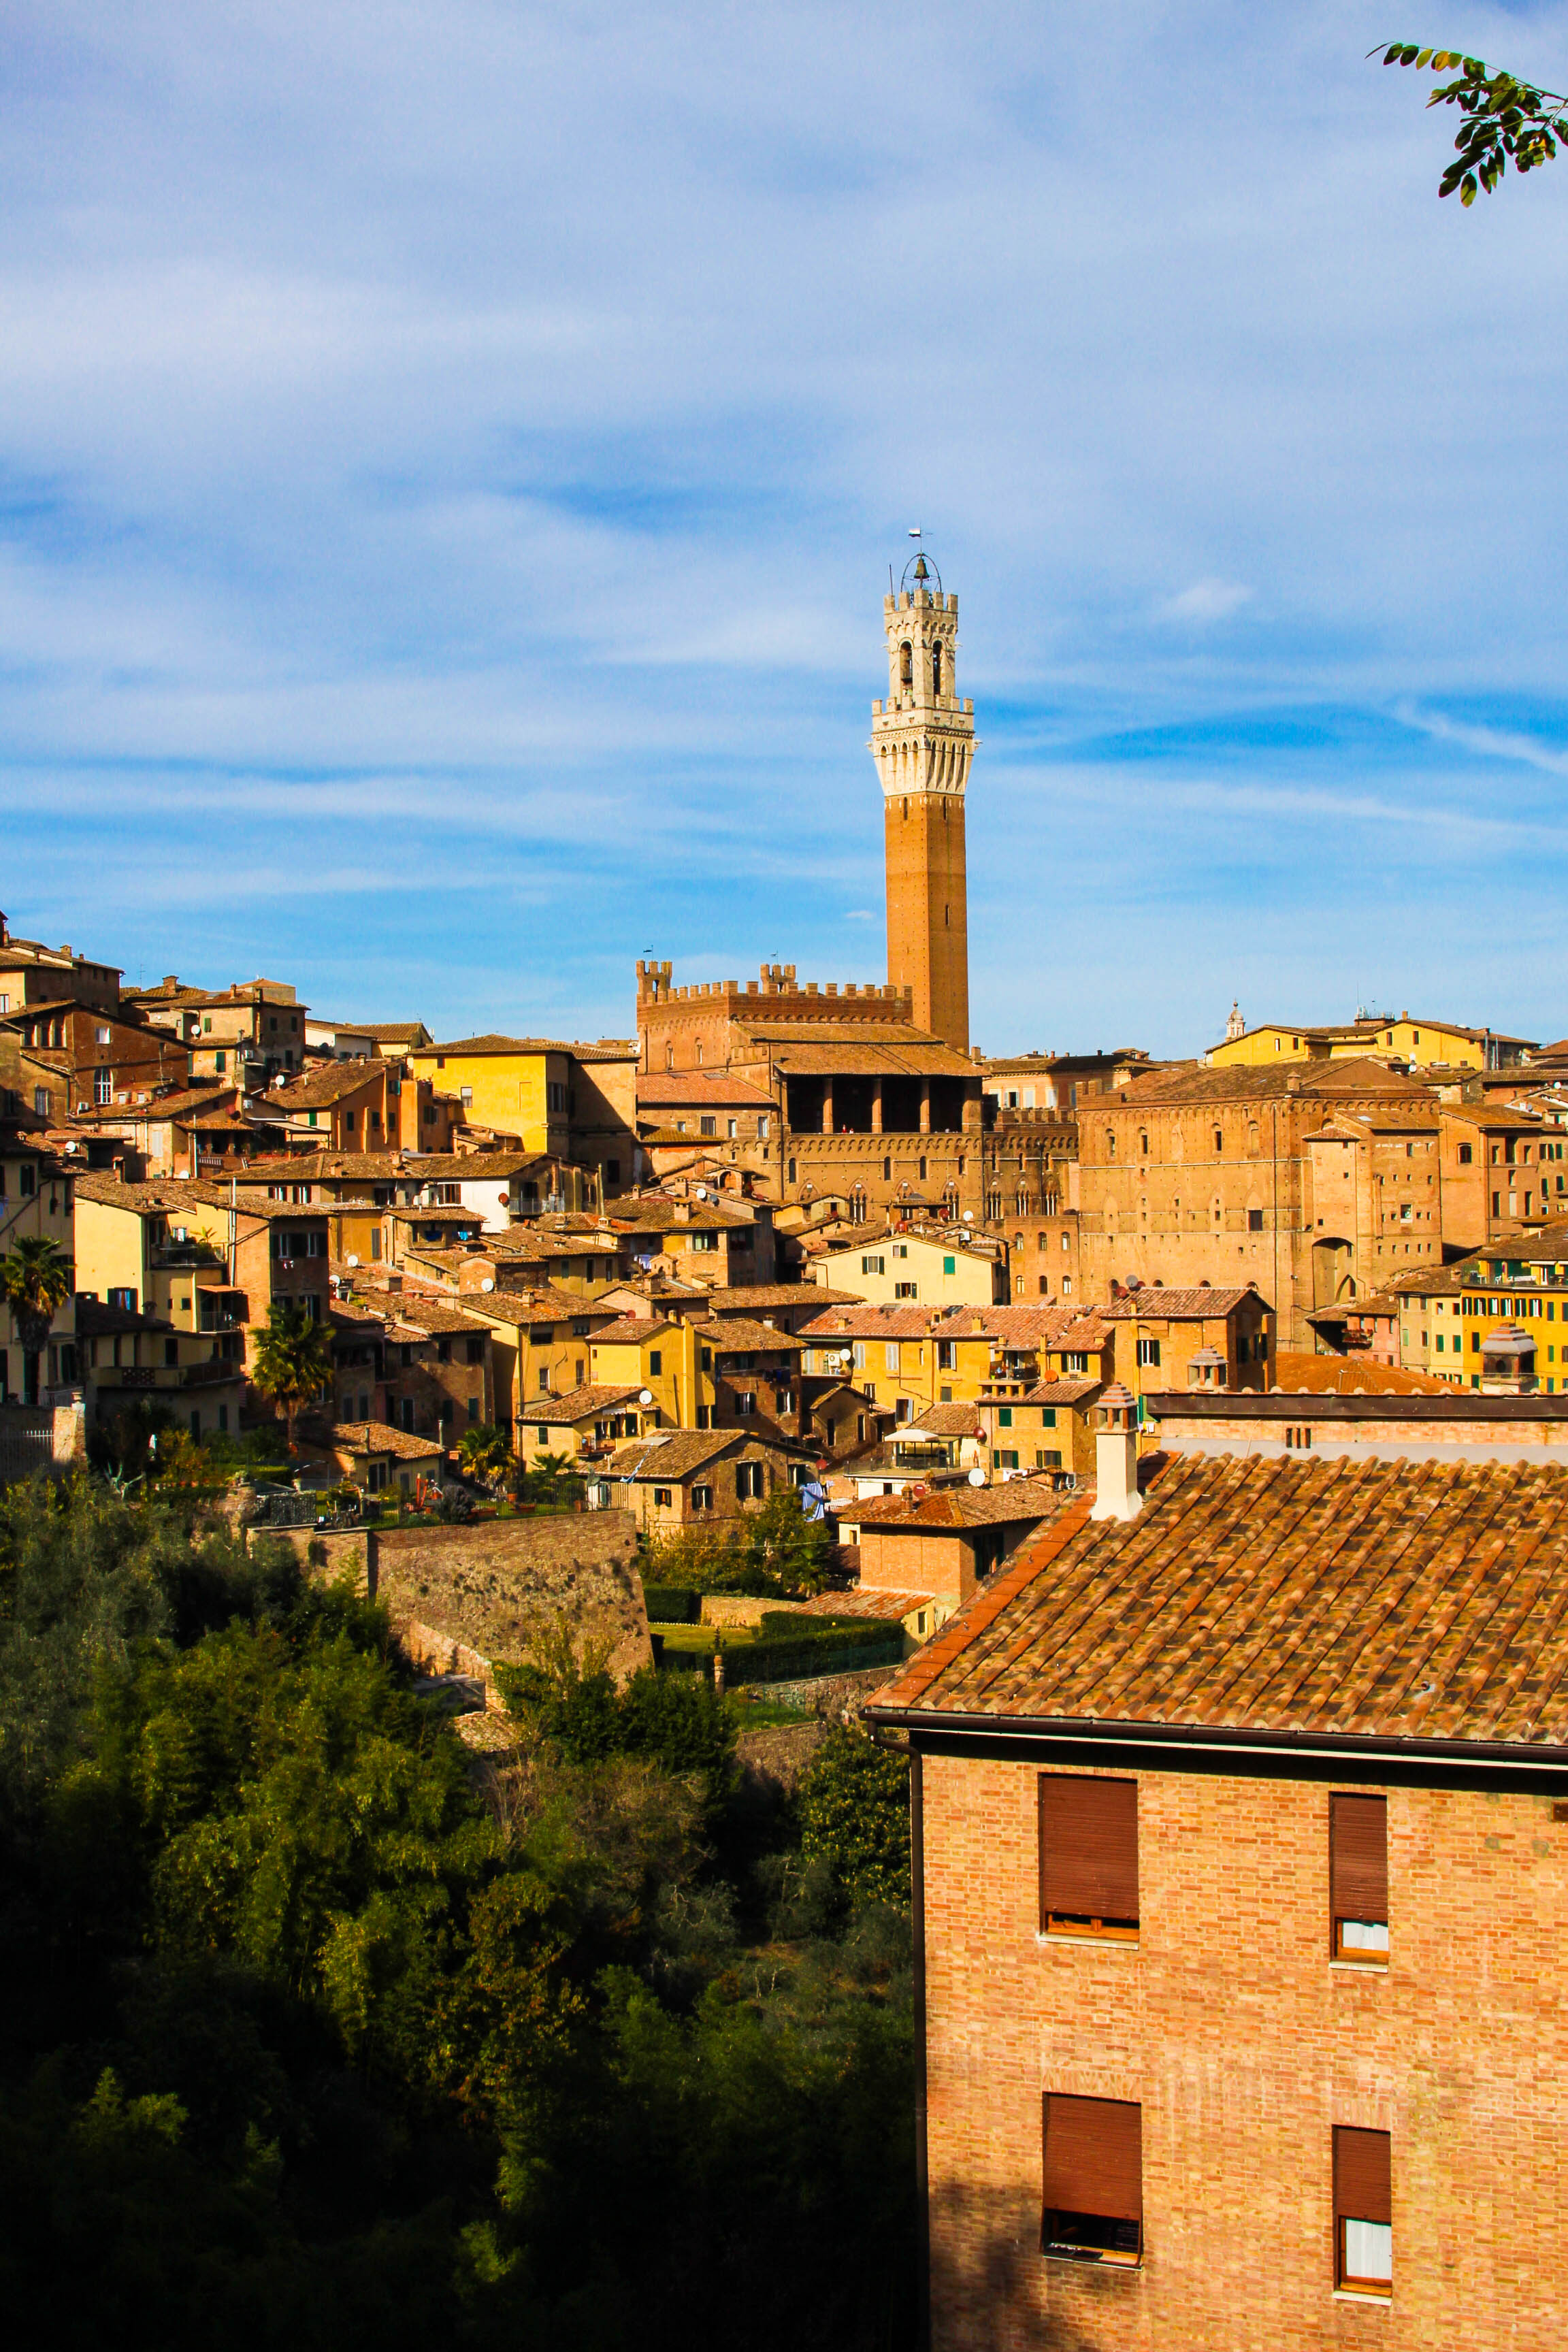 Beautiful Siena, as seen from the lot where we parked (!)